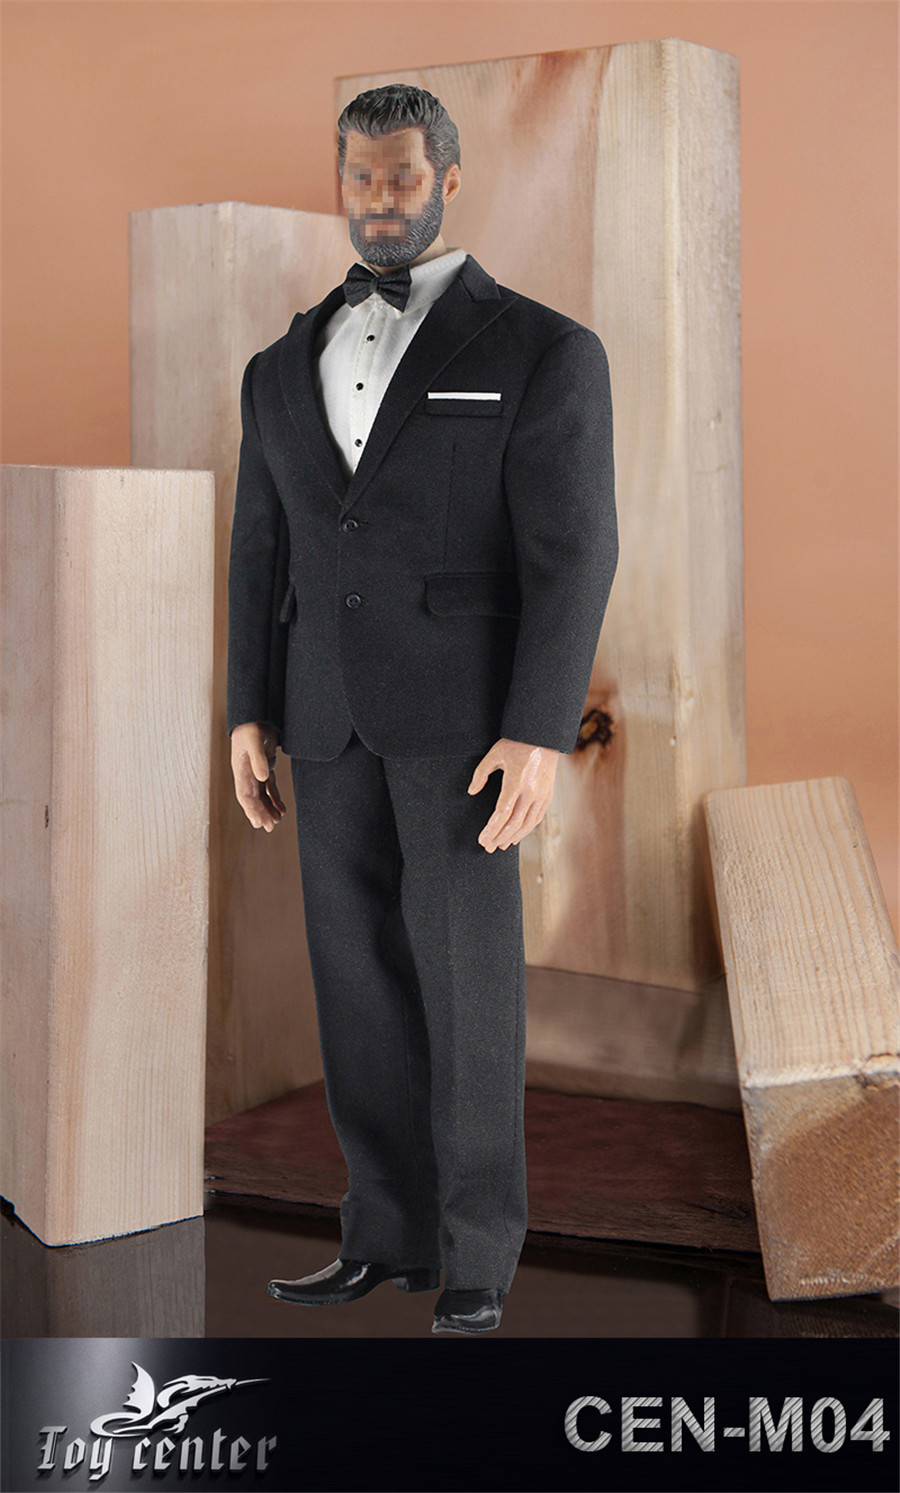 Toy Center CEN-M04 British Gentleman Suit Set 1//6 Formal Clothes F 12/'/' Male Bod